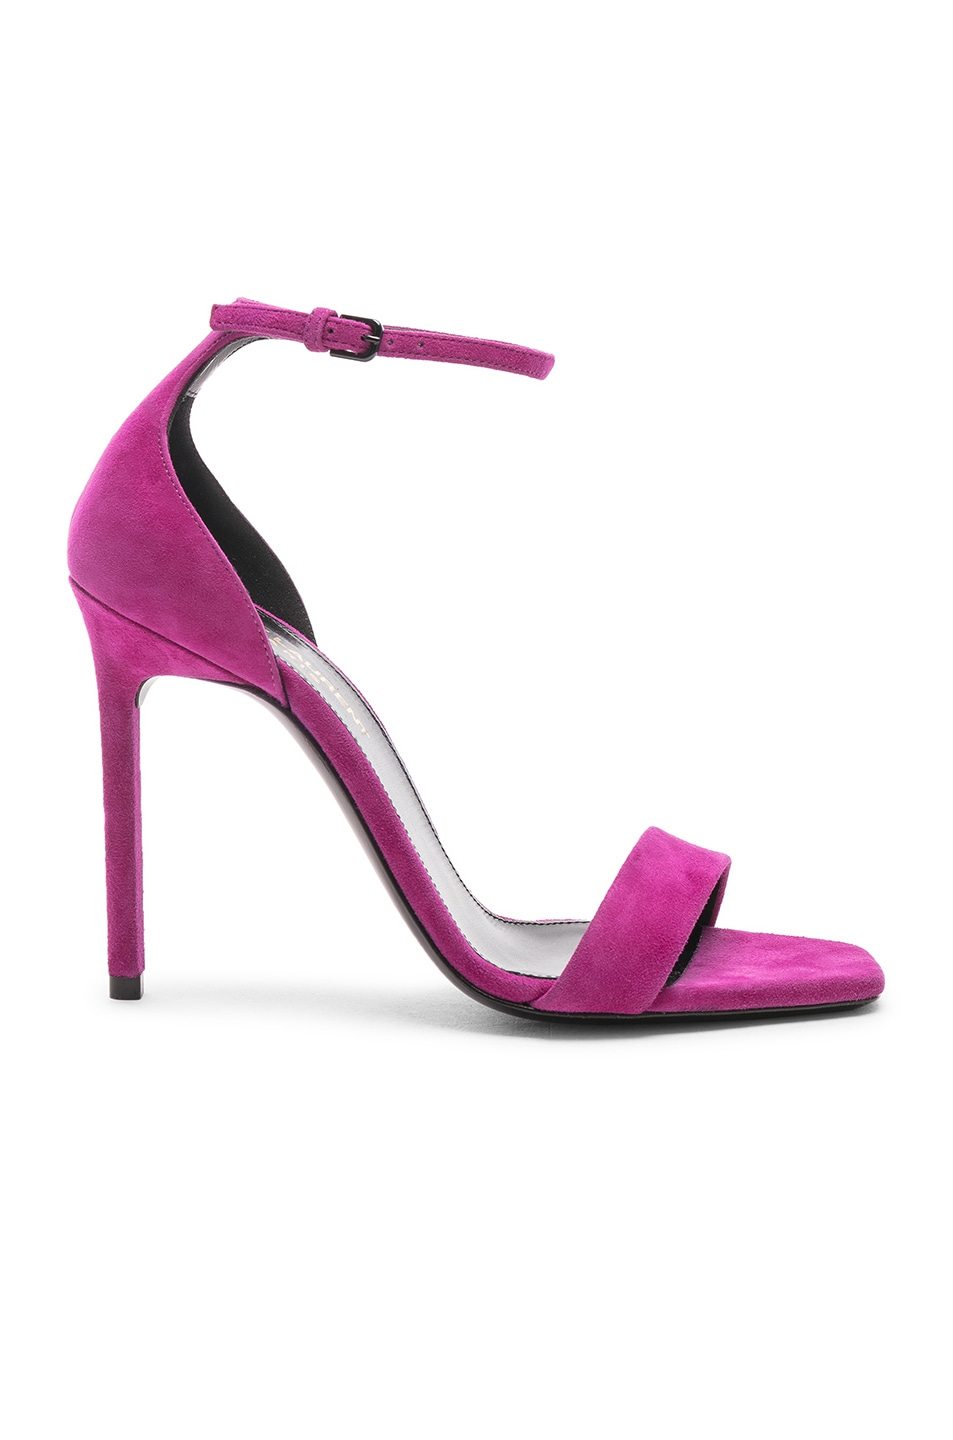 Image 1 of Saint Laurent Lou Lou Heels in Pink